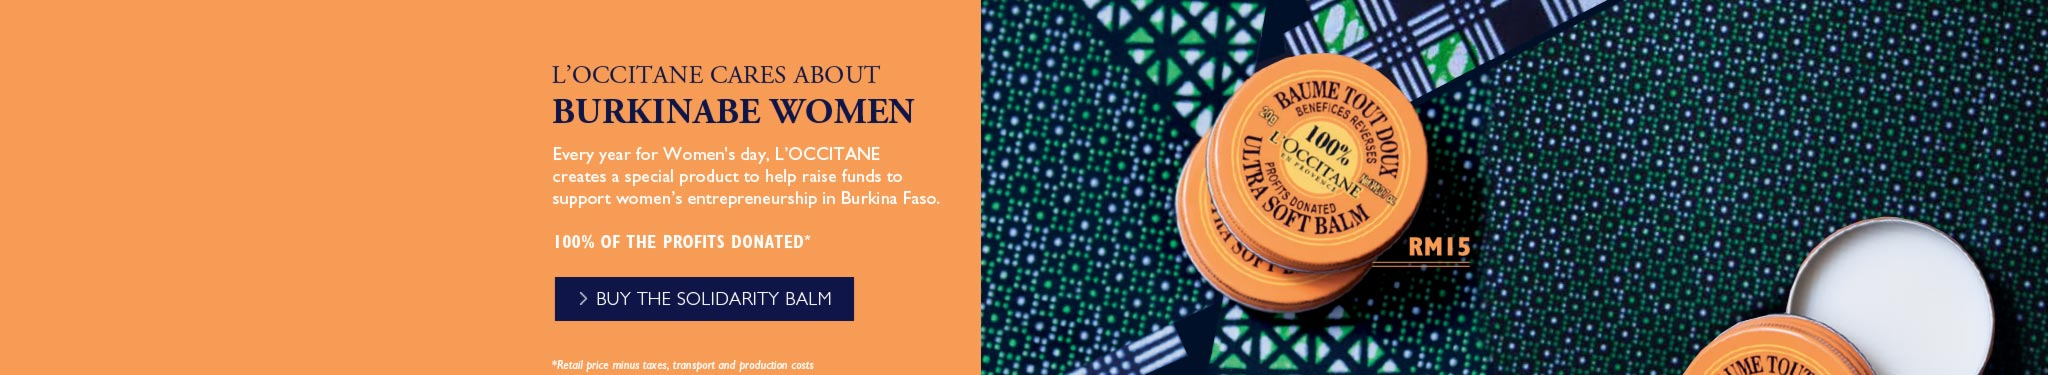 L'OCCITANE CARES ABOUT BURKINABE WOMEN